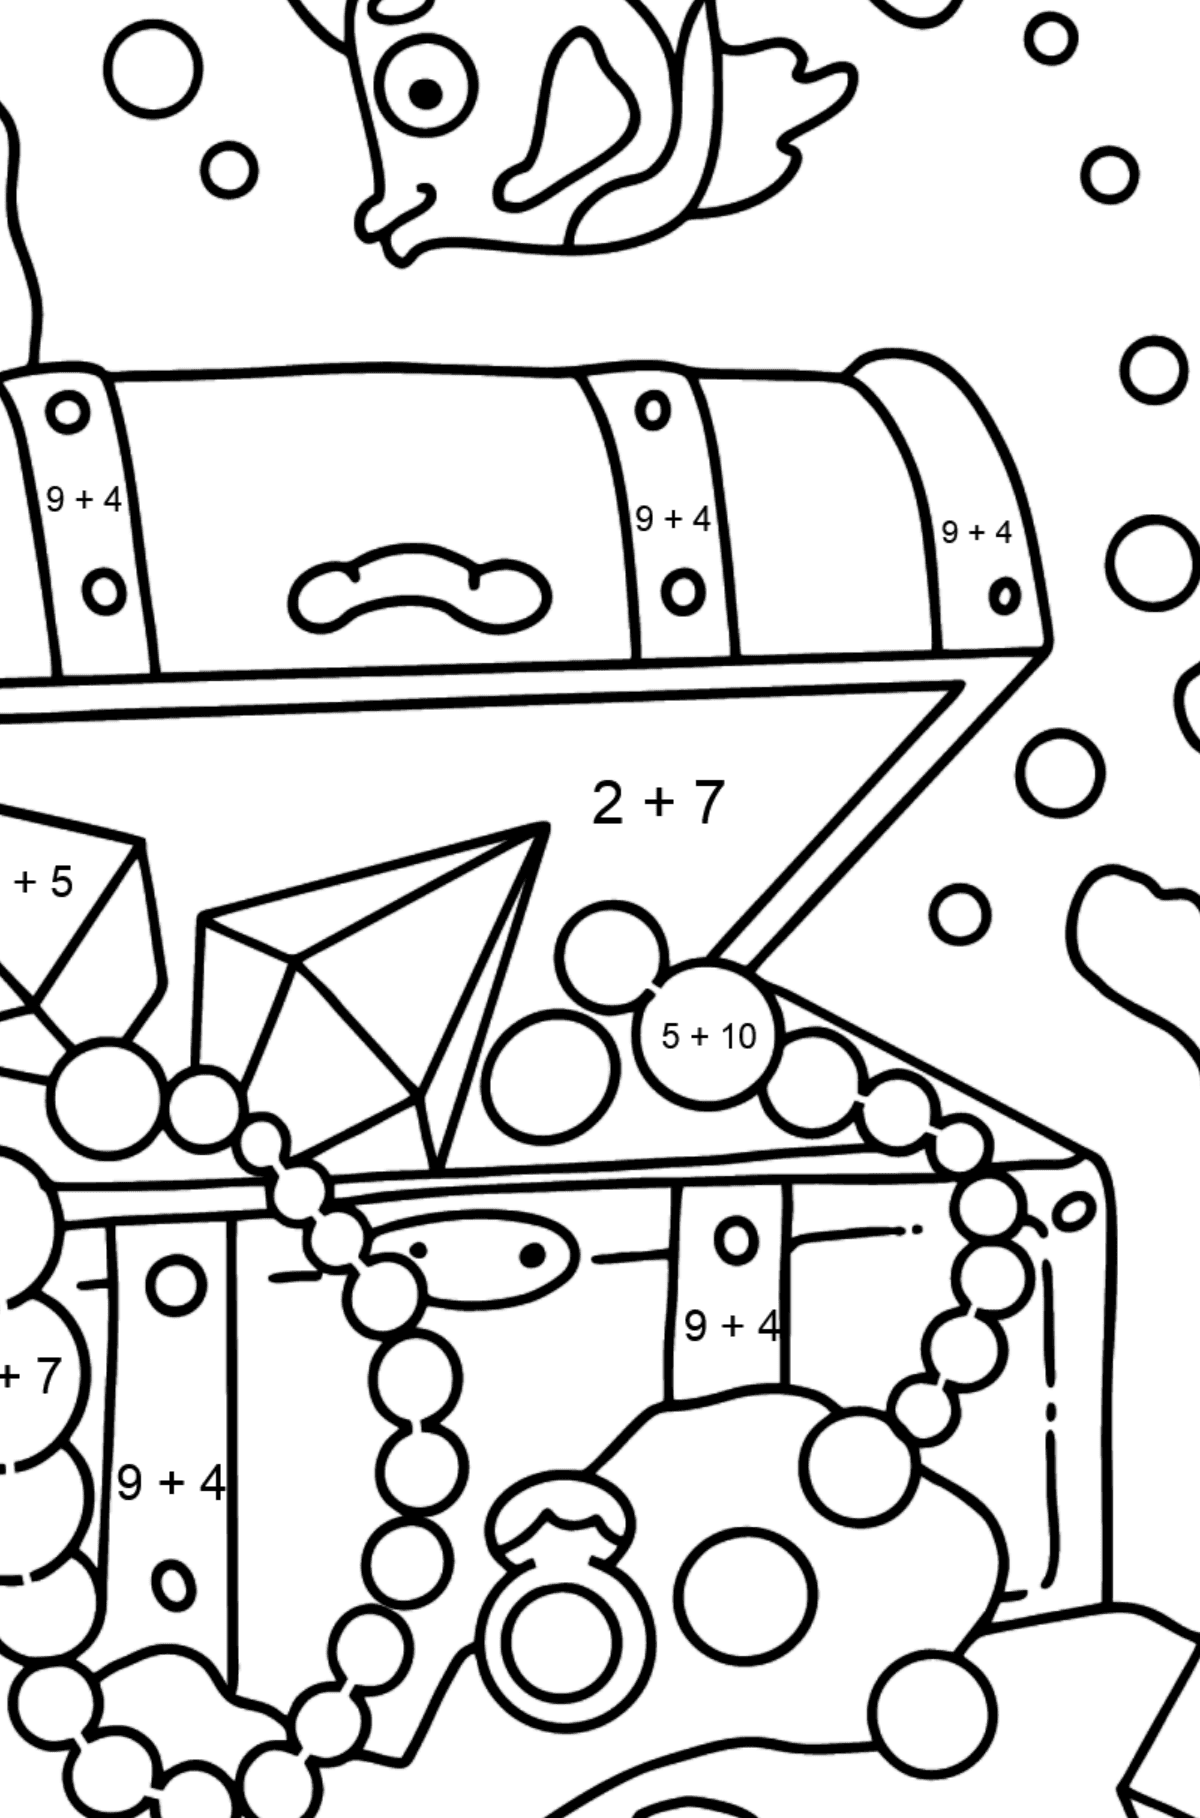 Coloring Page - A Fish is Swimming Around a Pirate's Chest - Math Coloring - Addition for Kids